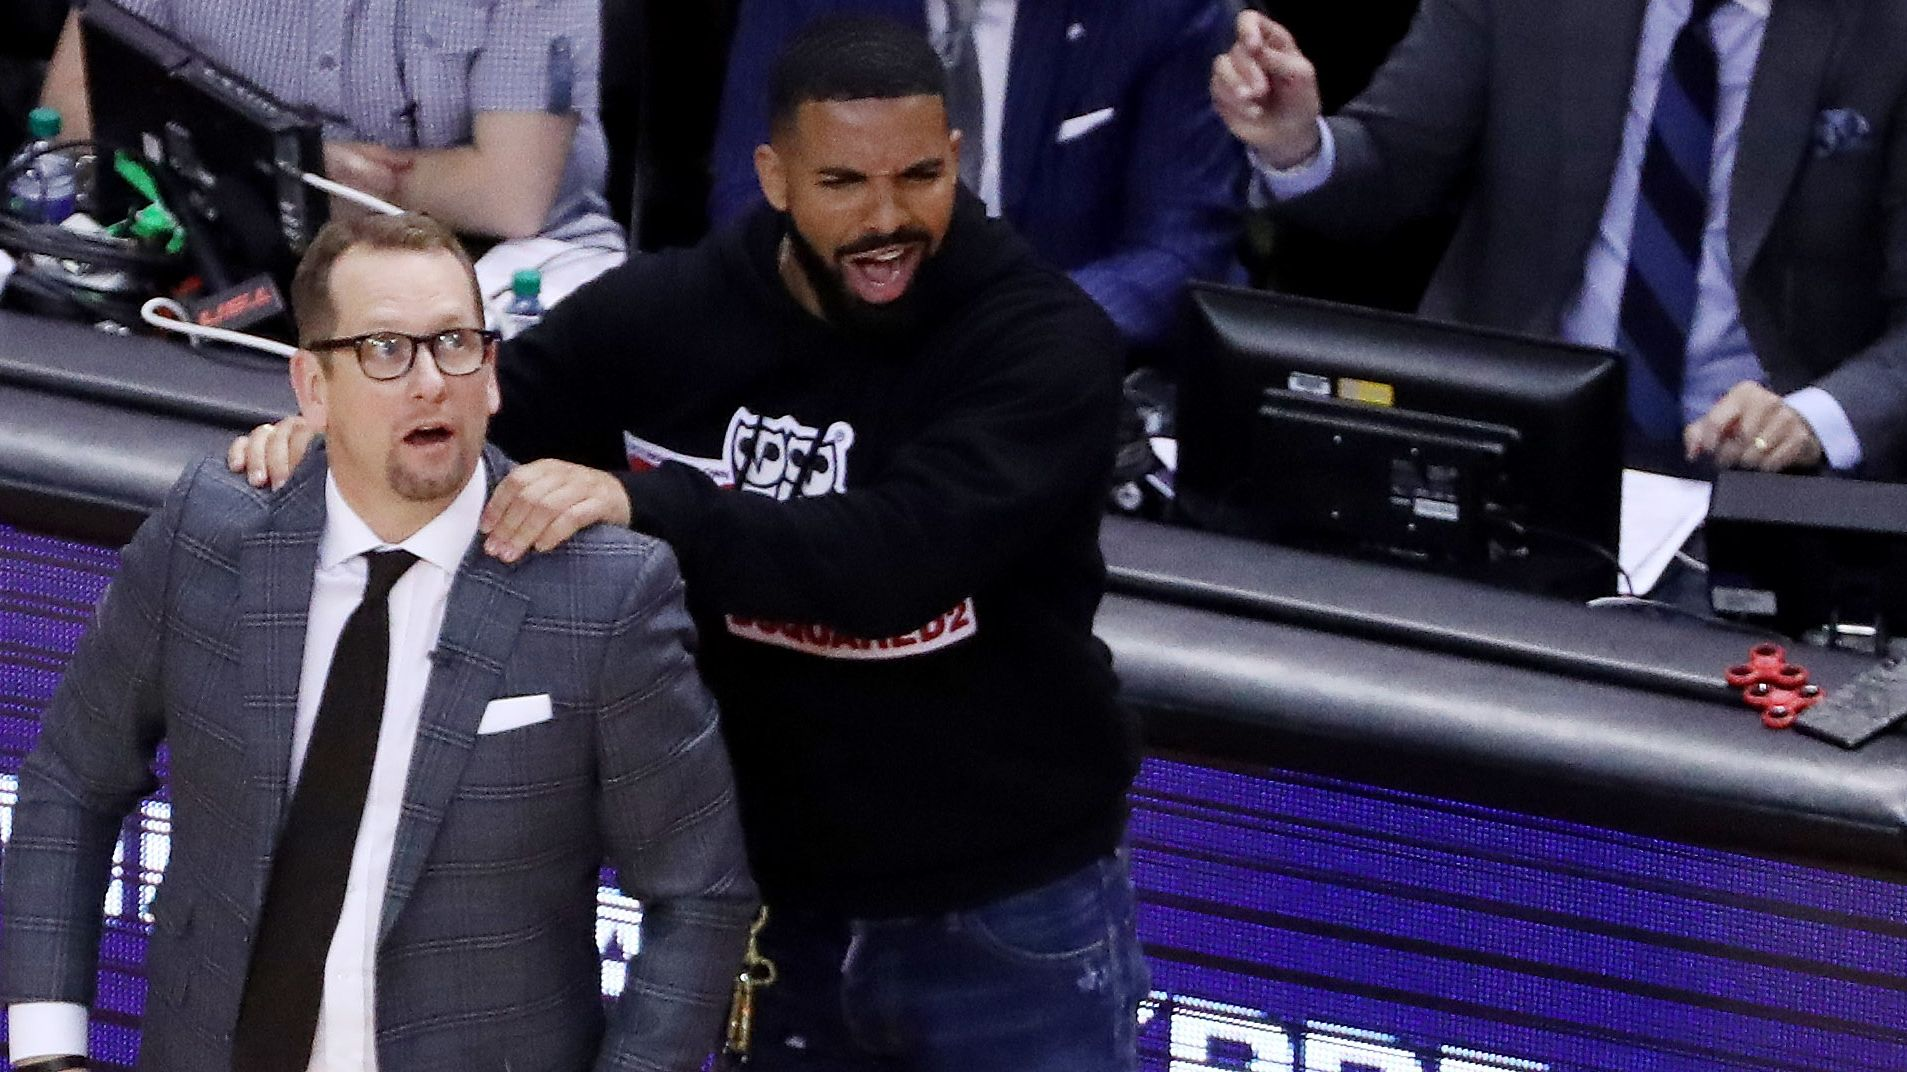 Budenholzer miffed by Drake antics; rapper replies